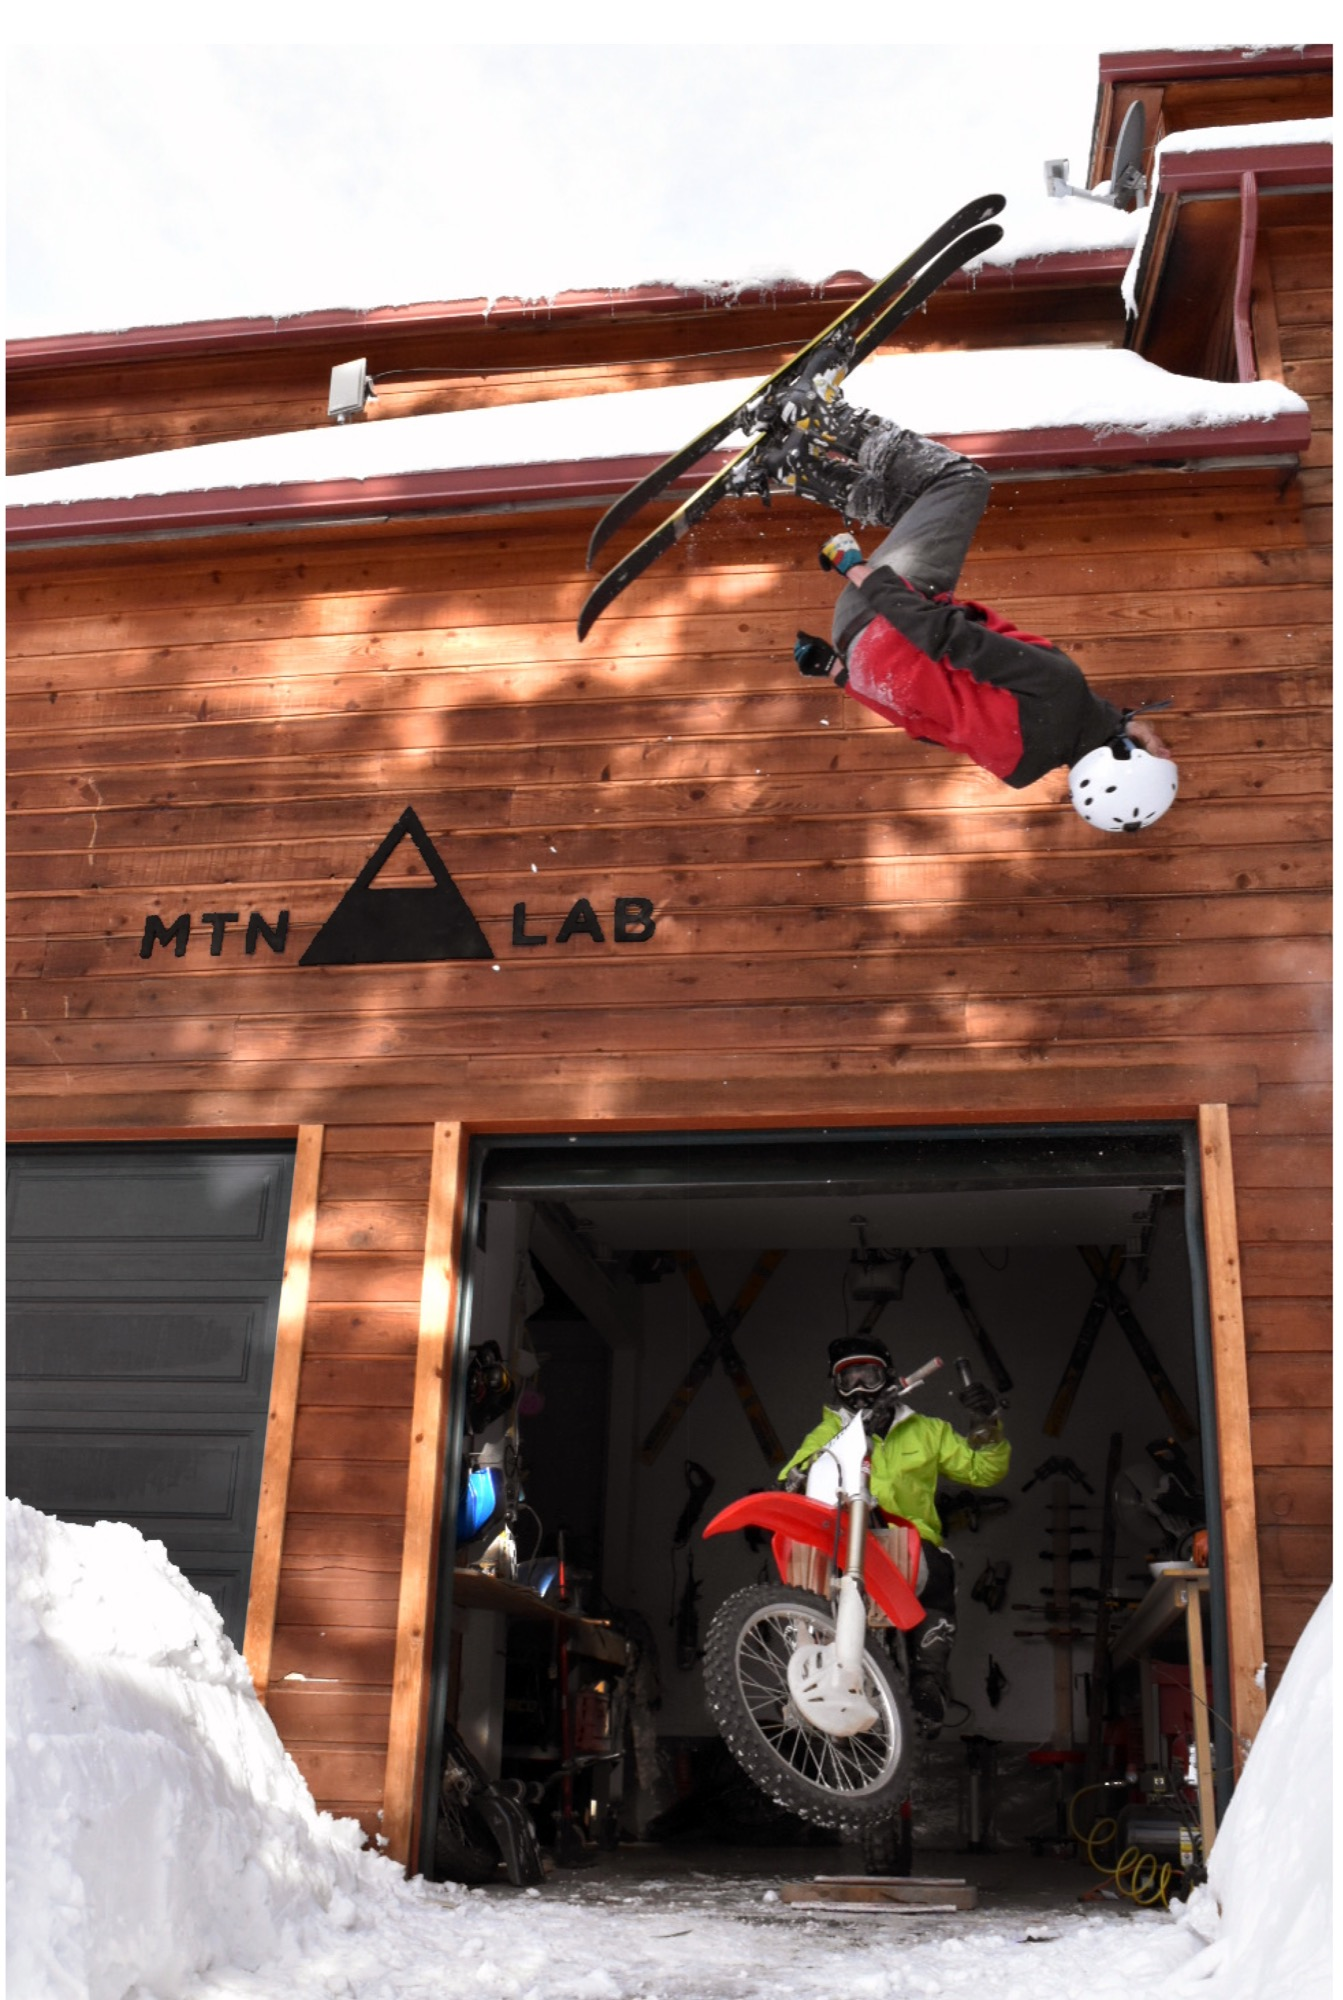 Hine and Unrau at their MTN Lab studio and home in Conifer, Colorado